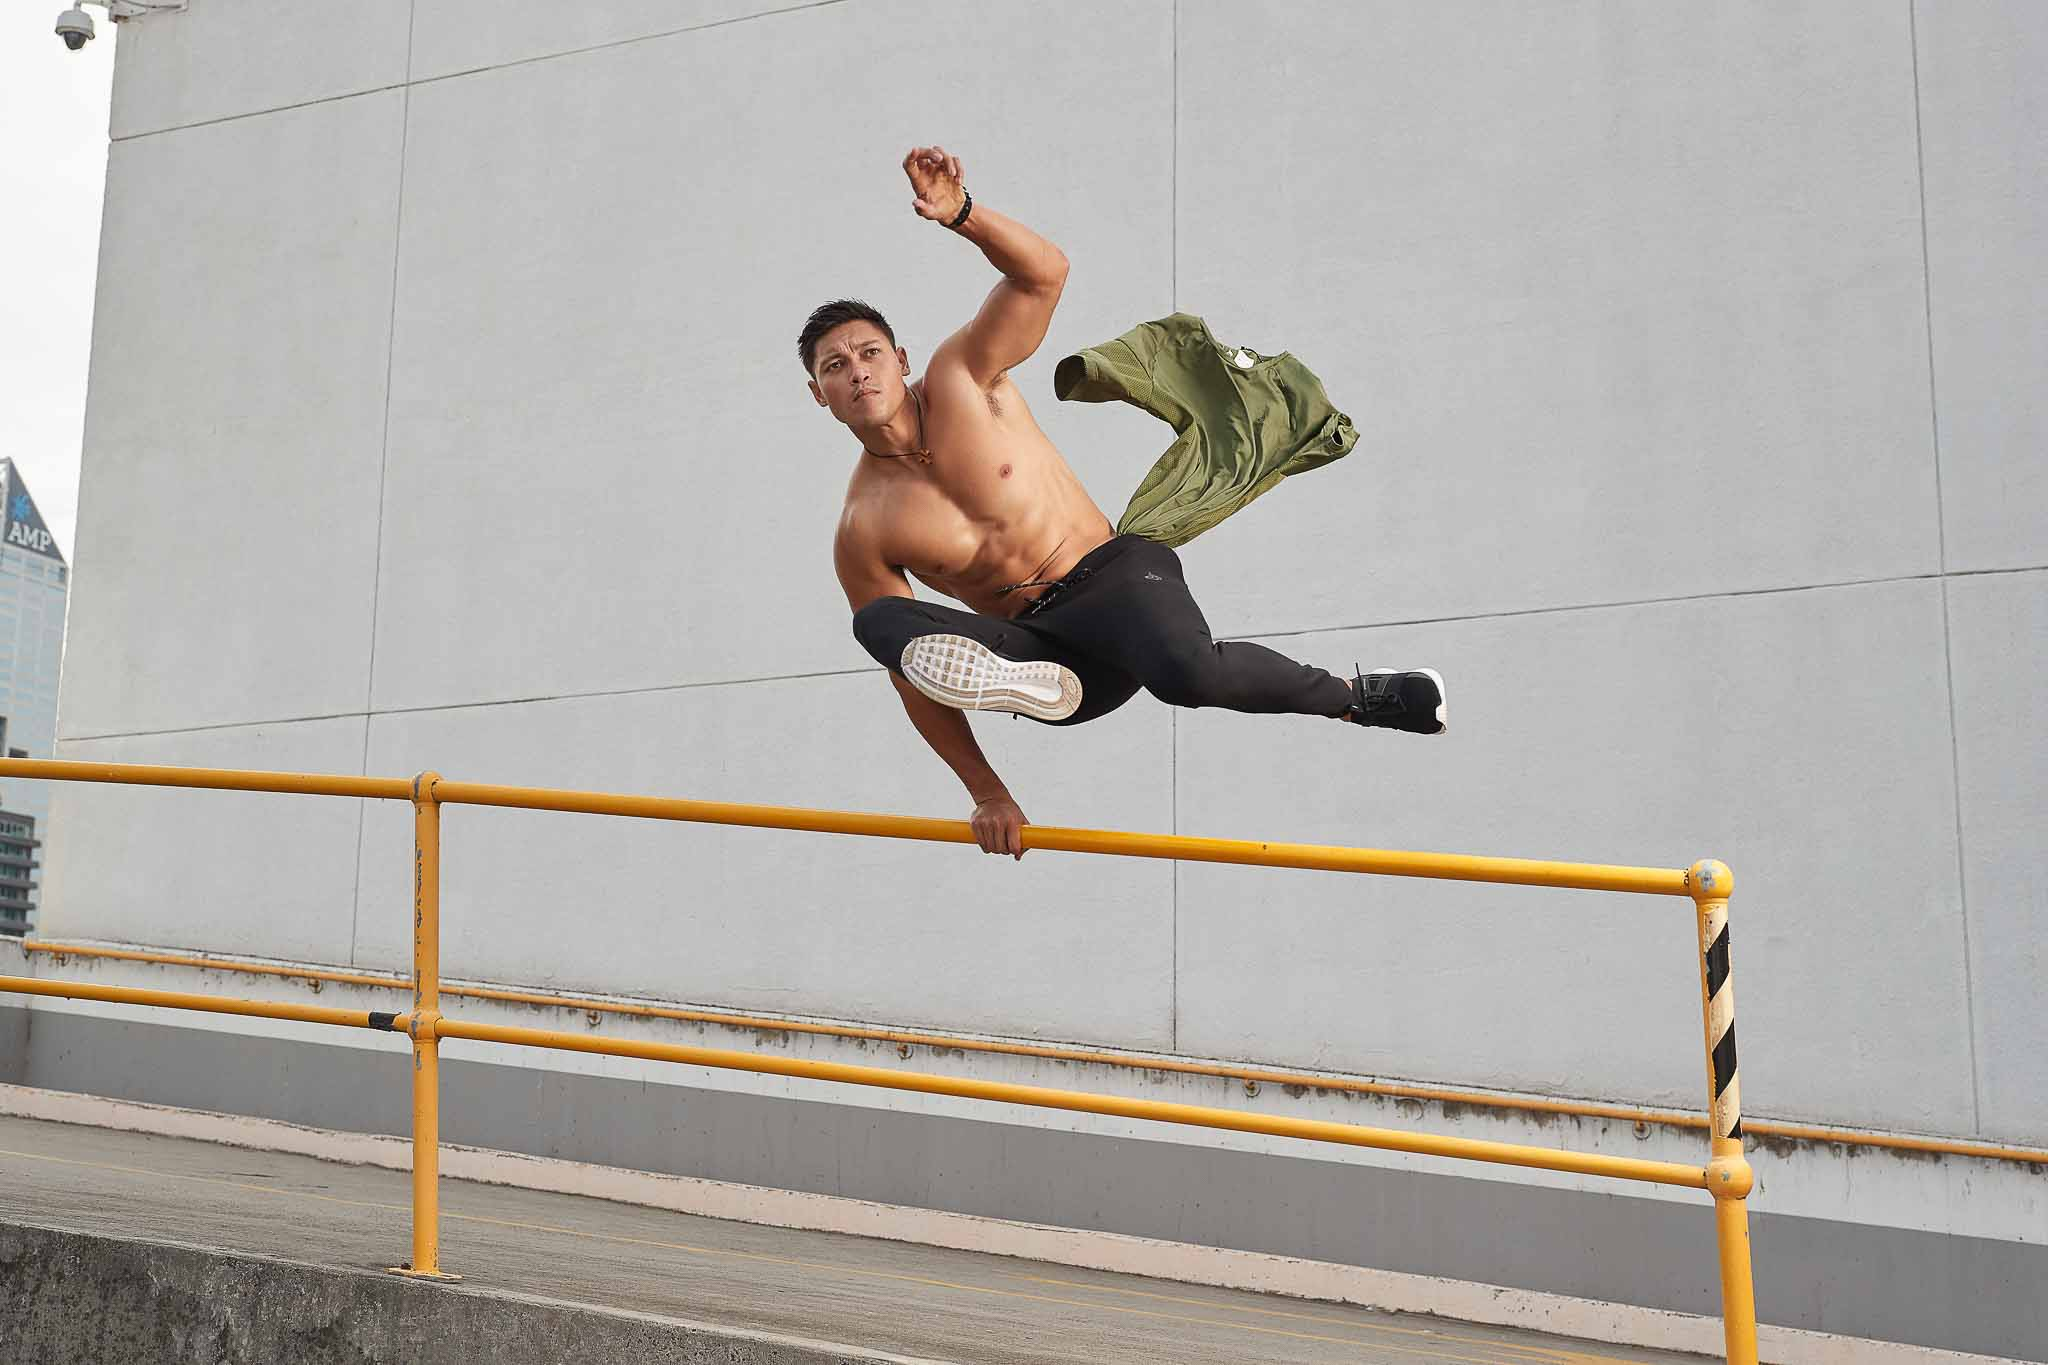 Andrew Mc jumping over a yellow metal rail topless